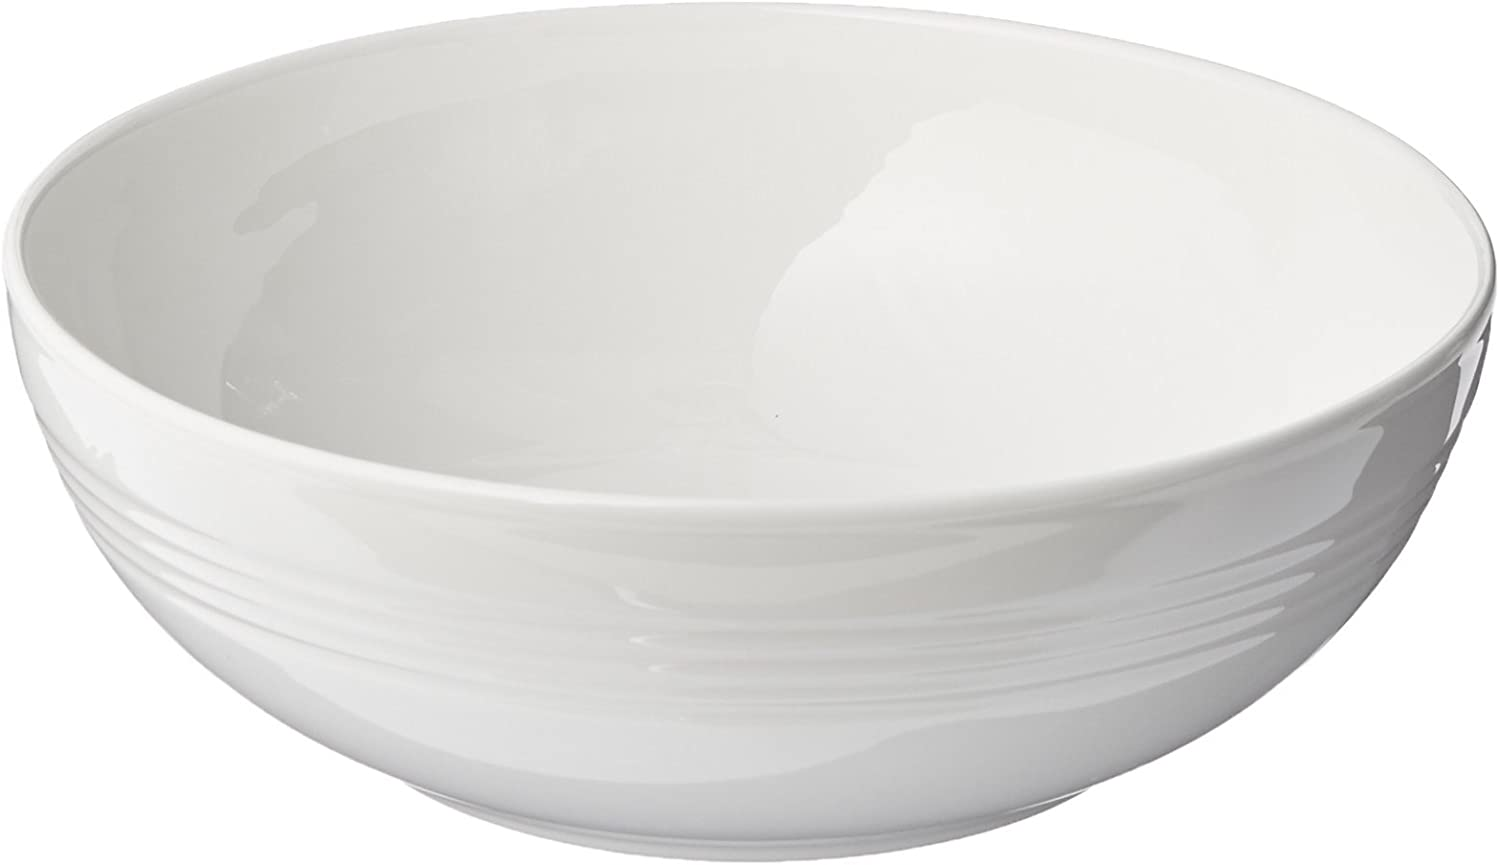 Lenox Tin Can Alley Small Serving Bowl, White - 811487